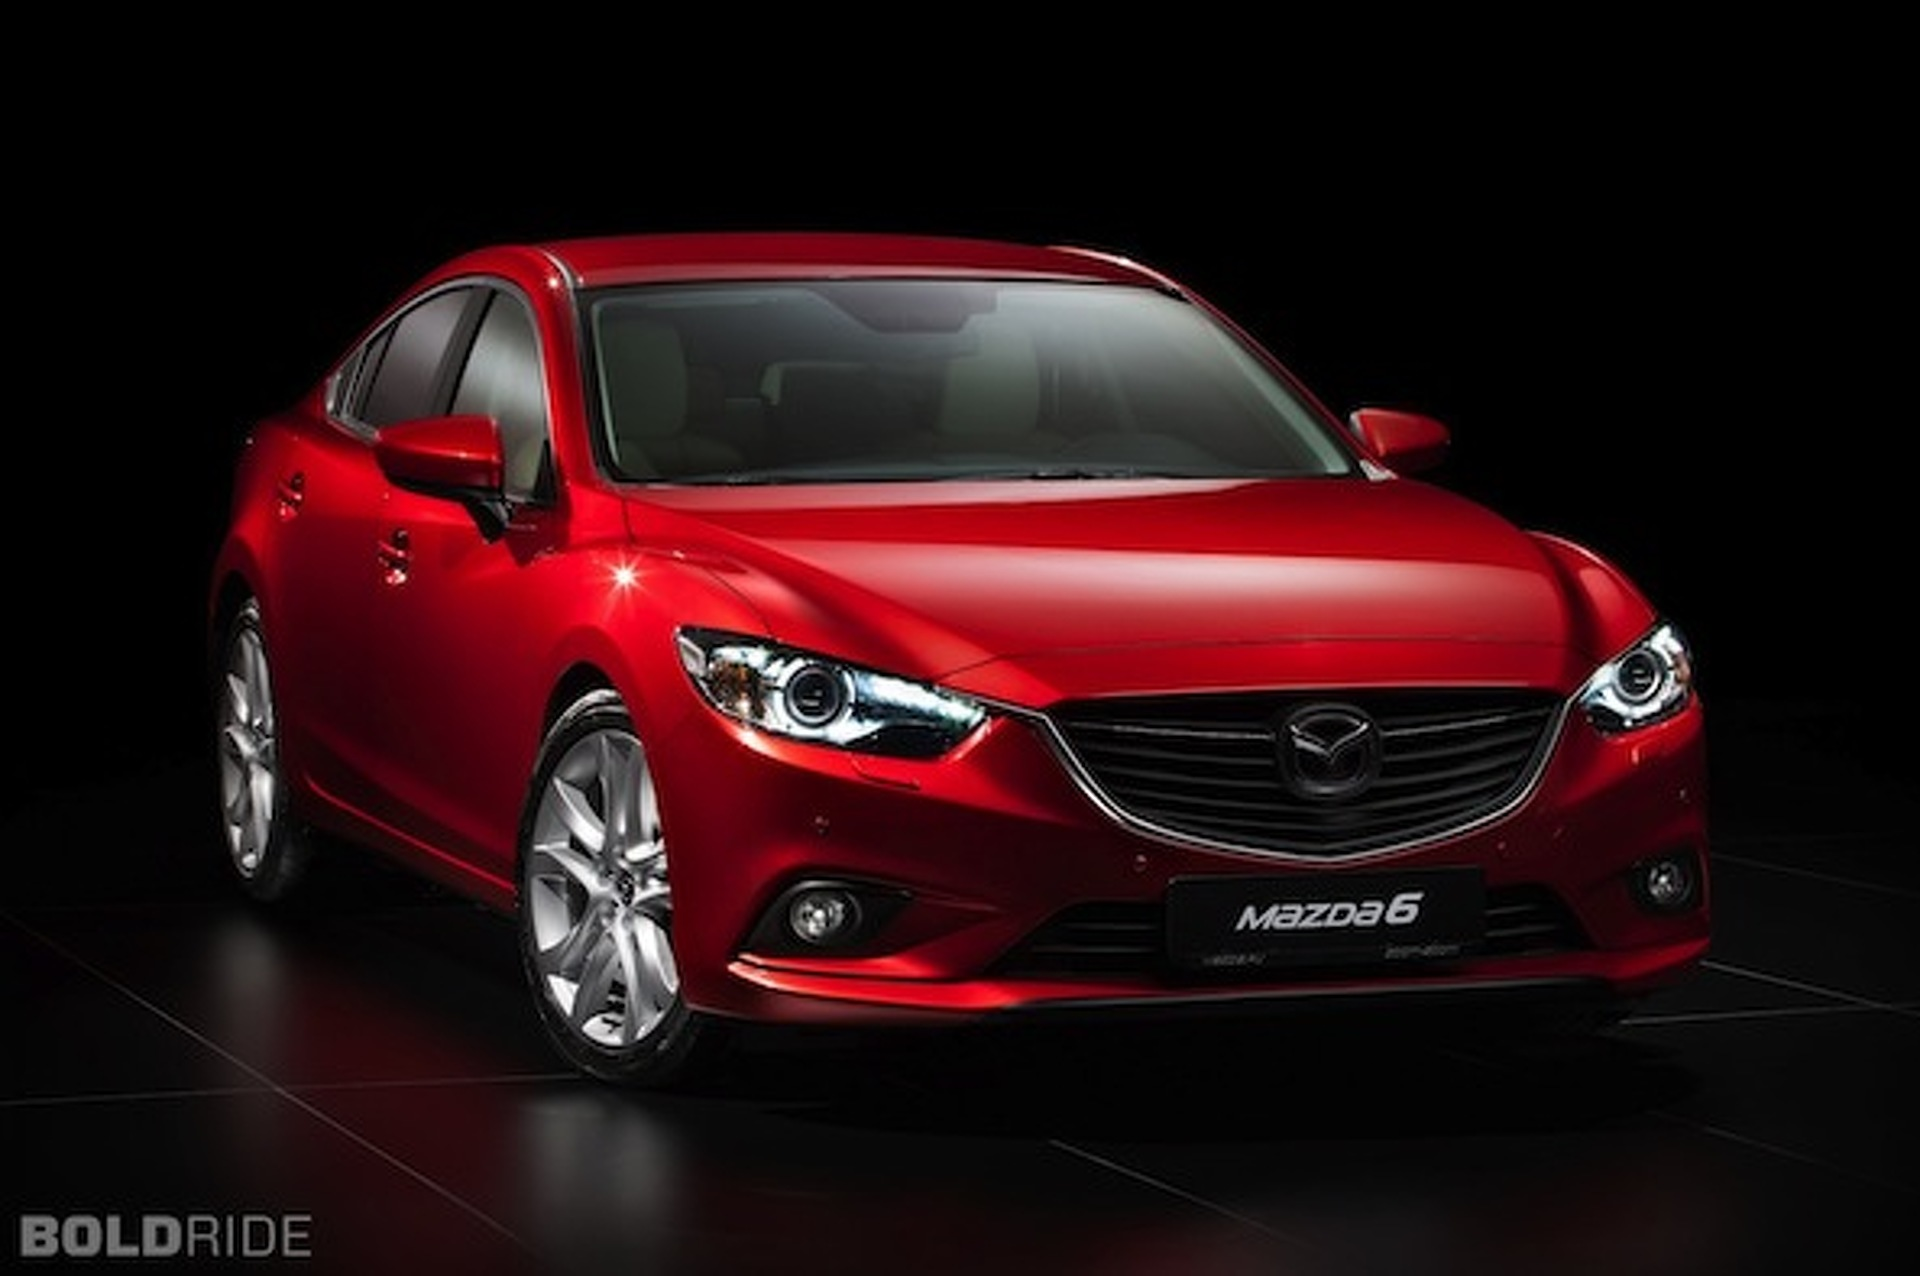 Tired of Crossovers? Here Are 7 Sedan Alternatives